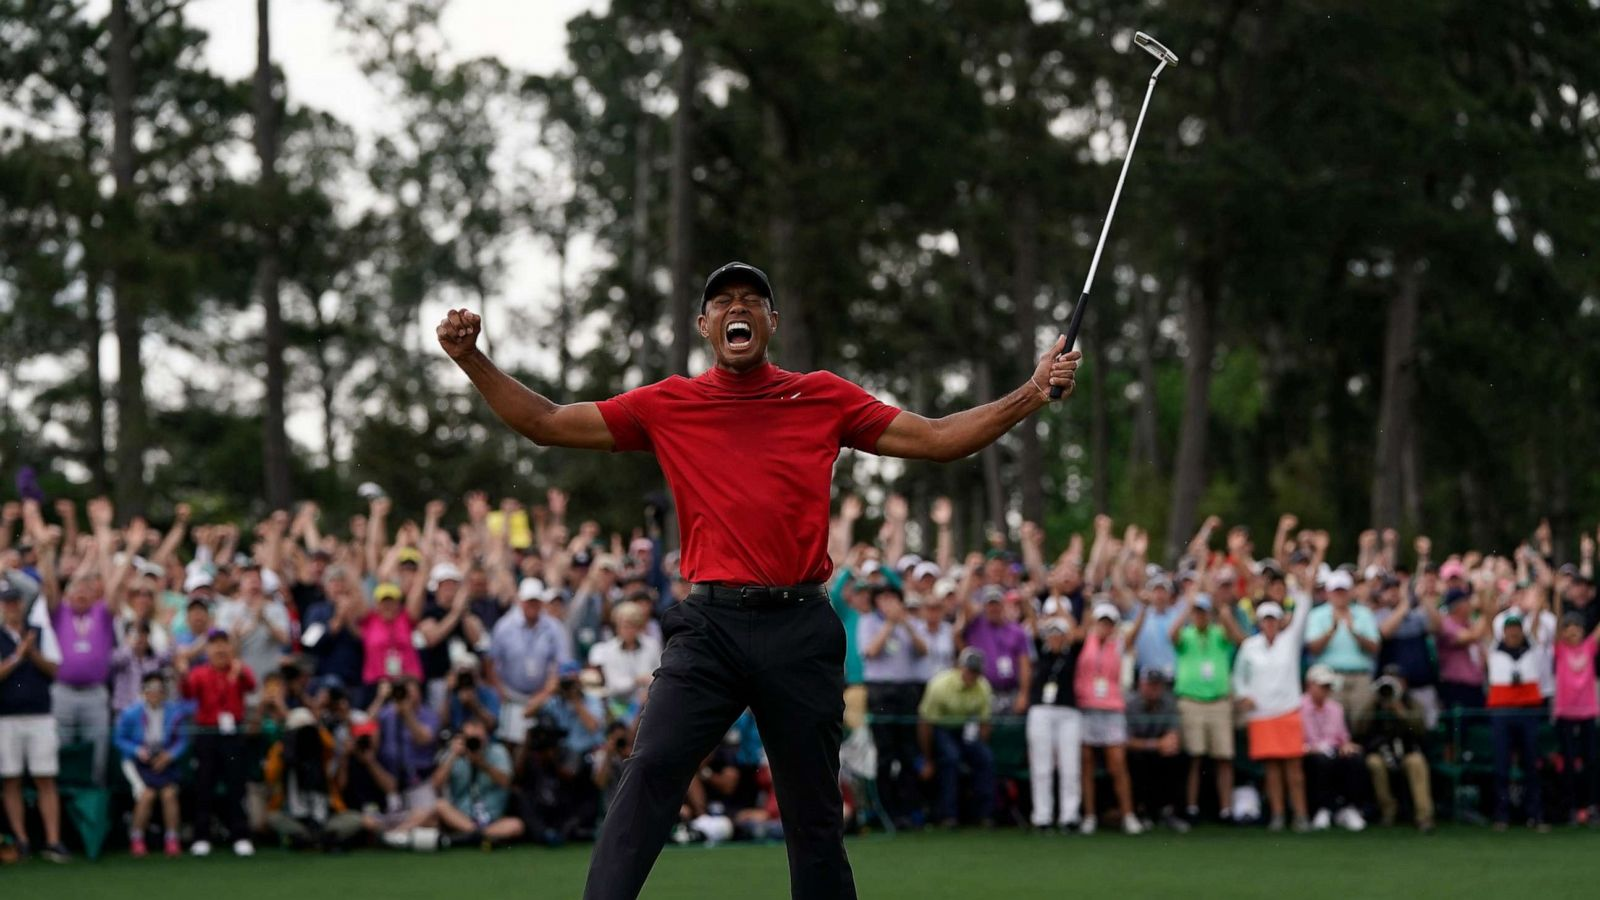 Tiger Woods Roars At The Masters Golfer Captures 5th Green Jacket 1st In 14 Years Abc News